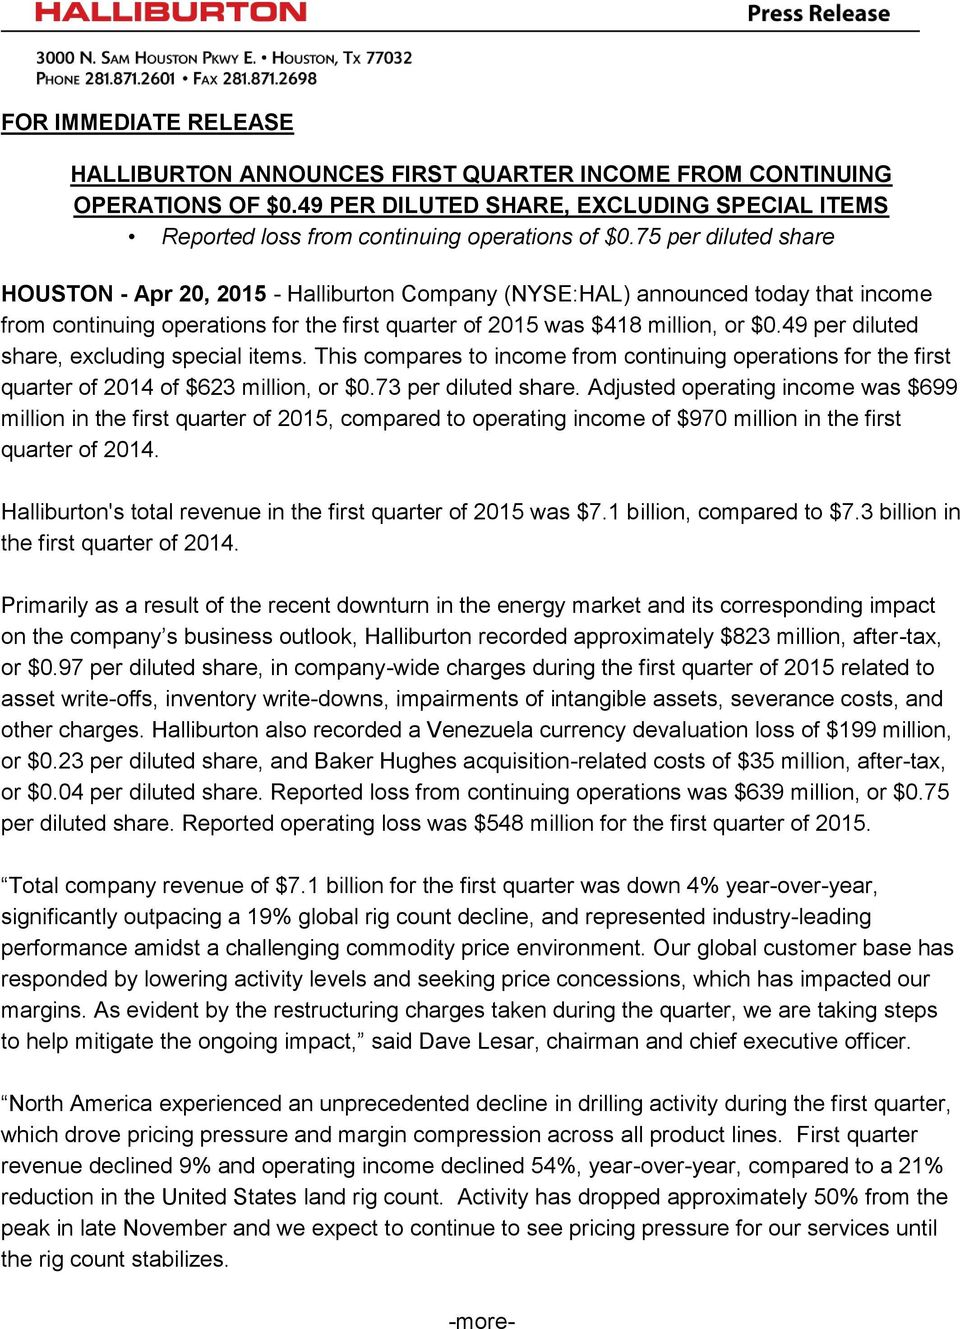 49 per diluted share, excluding special items. This compares to income from continuing operations for the first quarter of 2014 of $623 million, or $0.73 per diluted share.